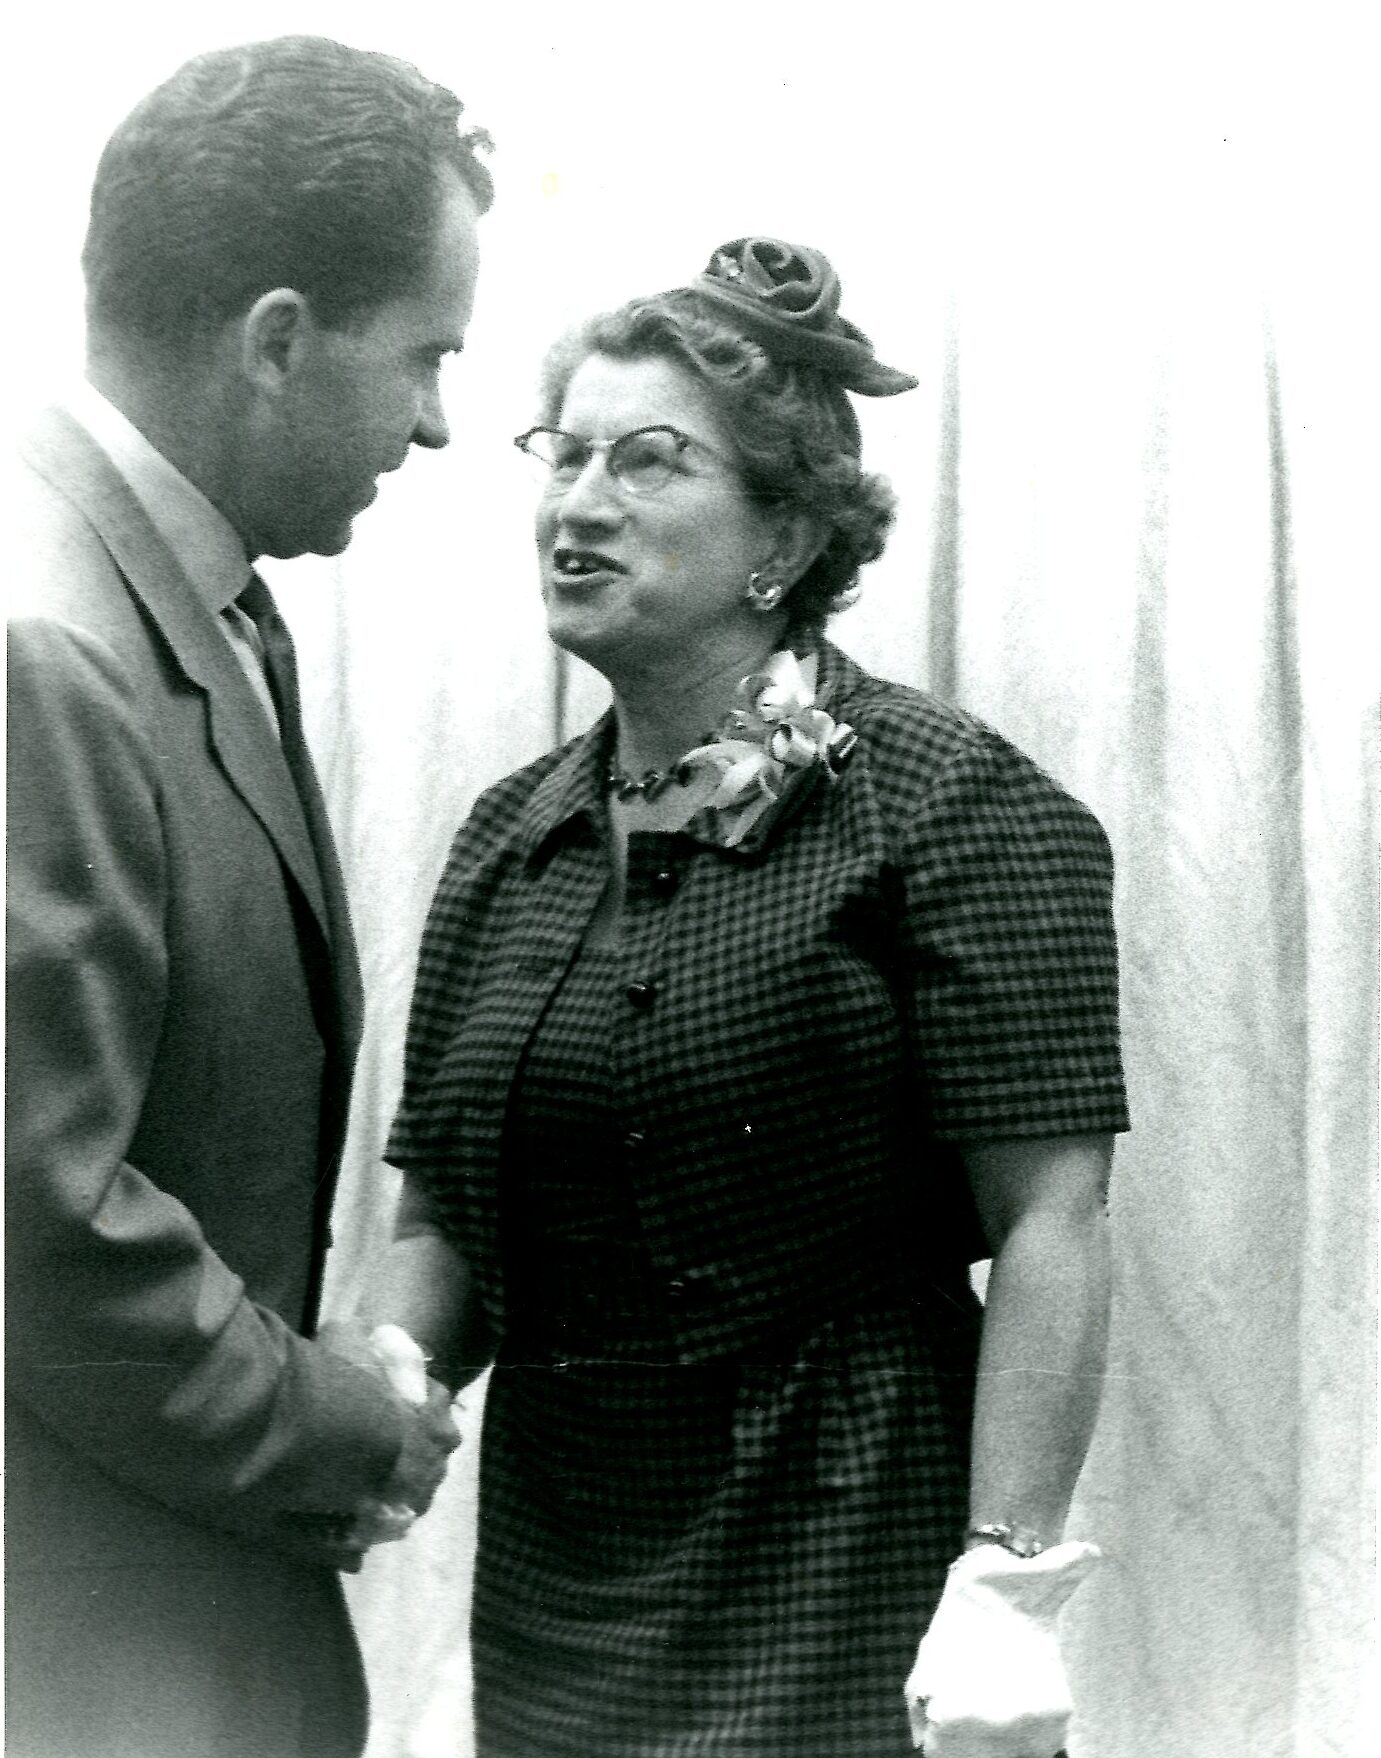 A photograph of Richard Nixon, visible in an obscured profile, stood shaking hands with Consuelo Northrop Bailey in front of a light-colored curtain. She appears to be speaking and he is gently smiling; they are both making eye contact with each other.